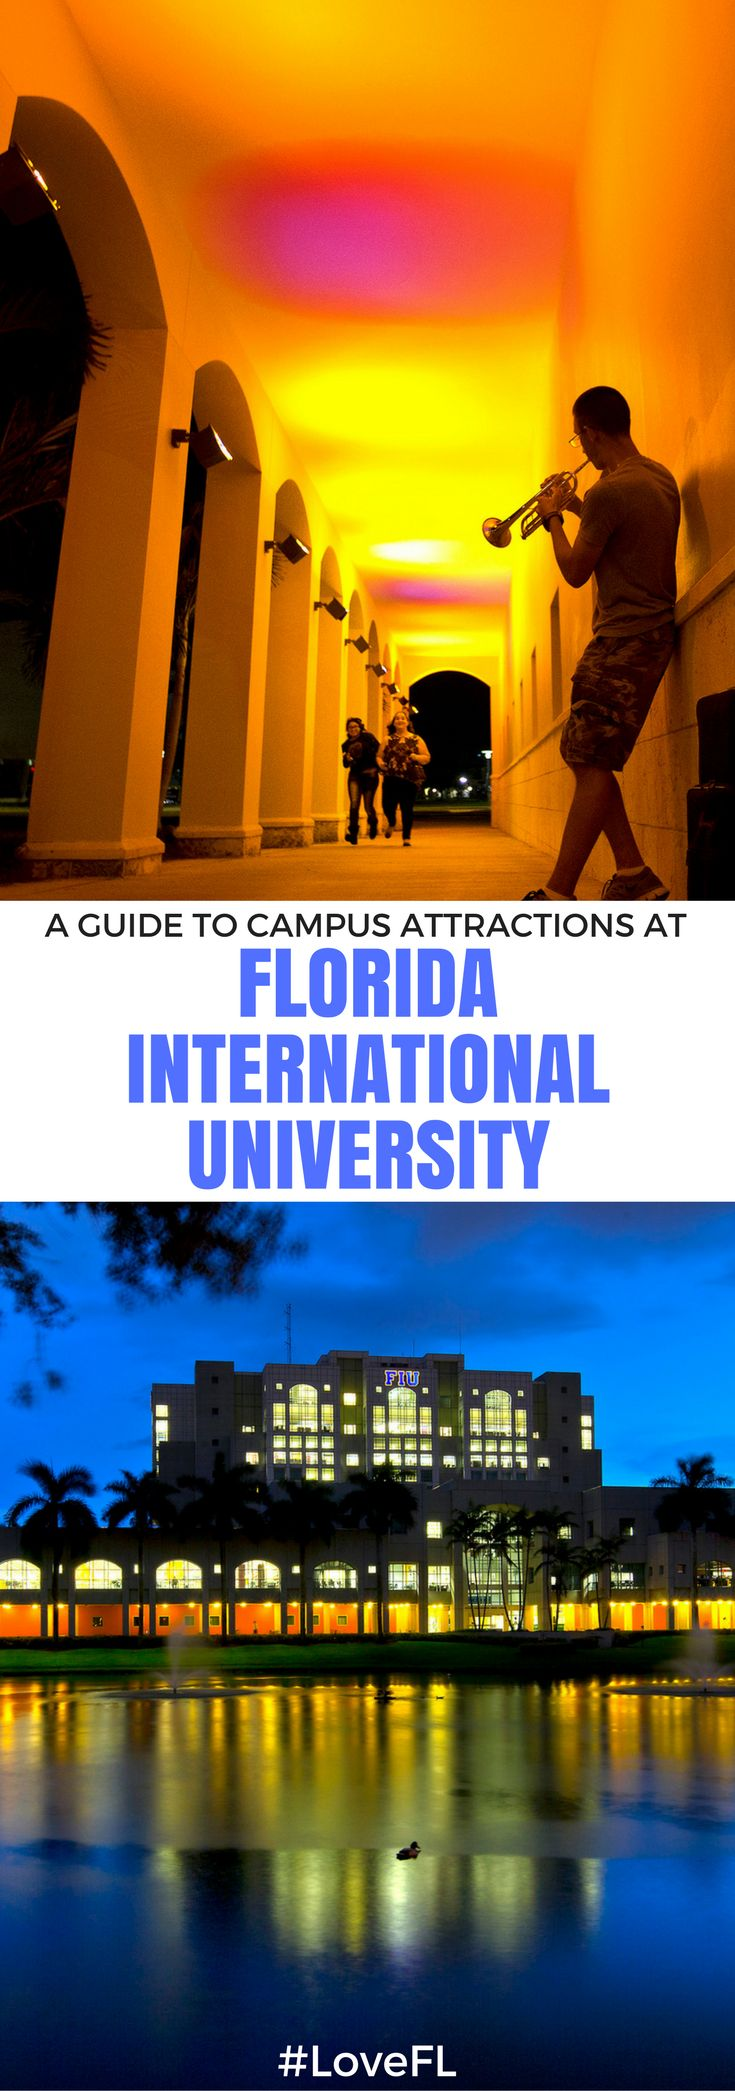 A guide to campus attractions at Florida International University | #Florida #College #Travel